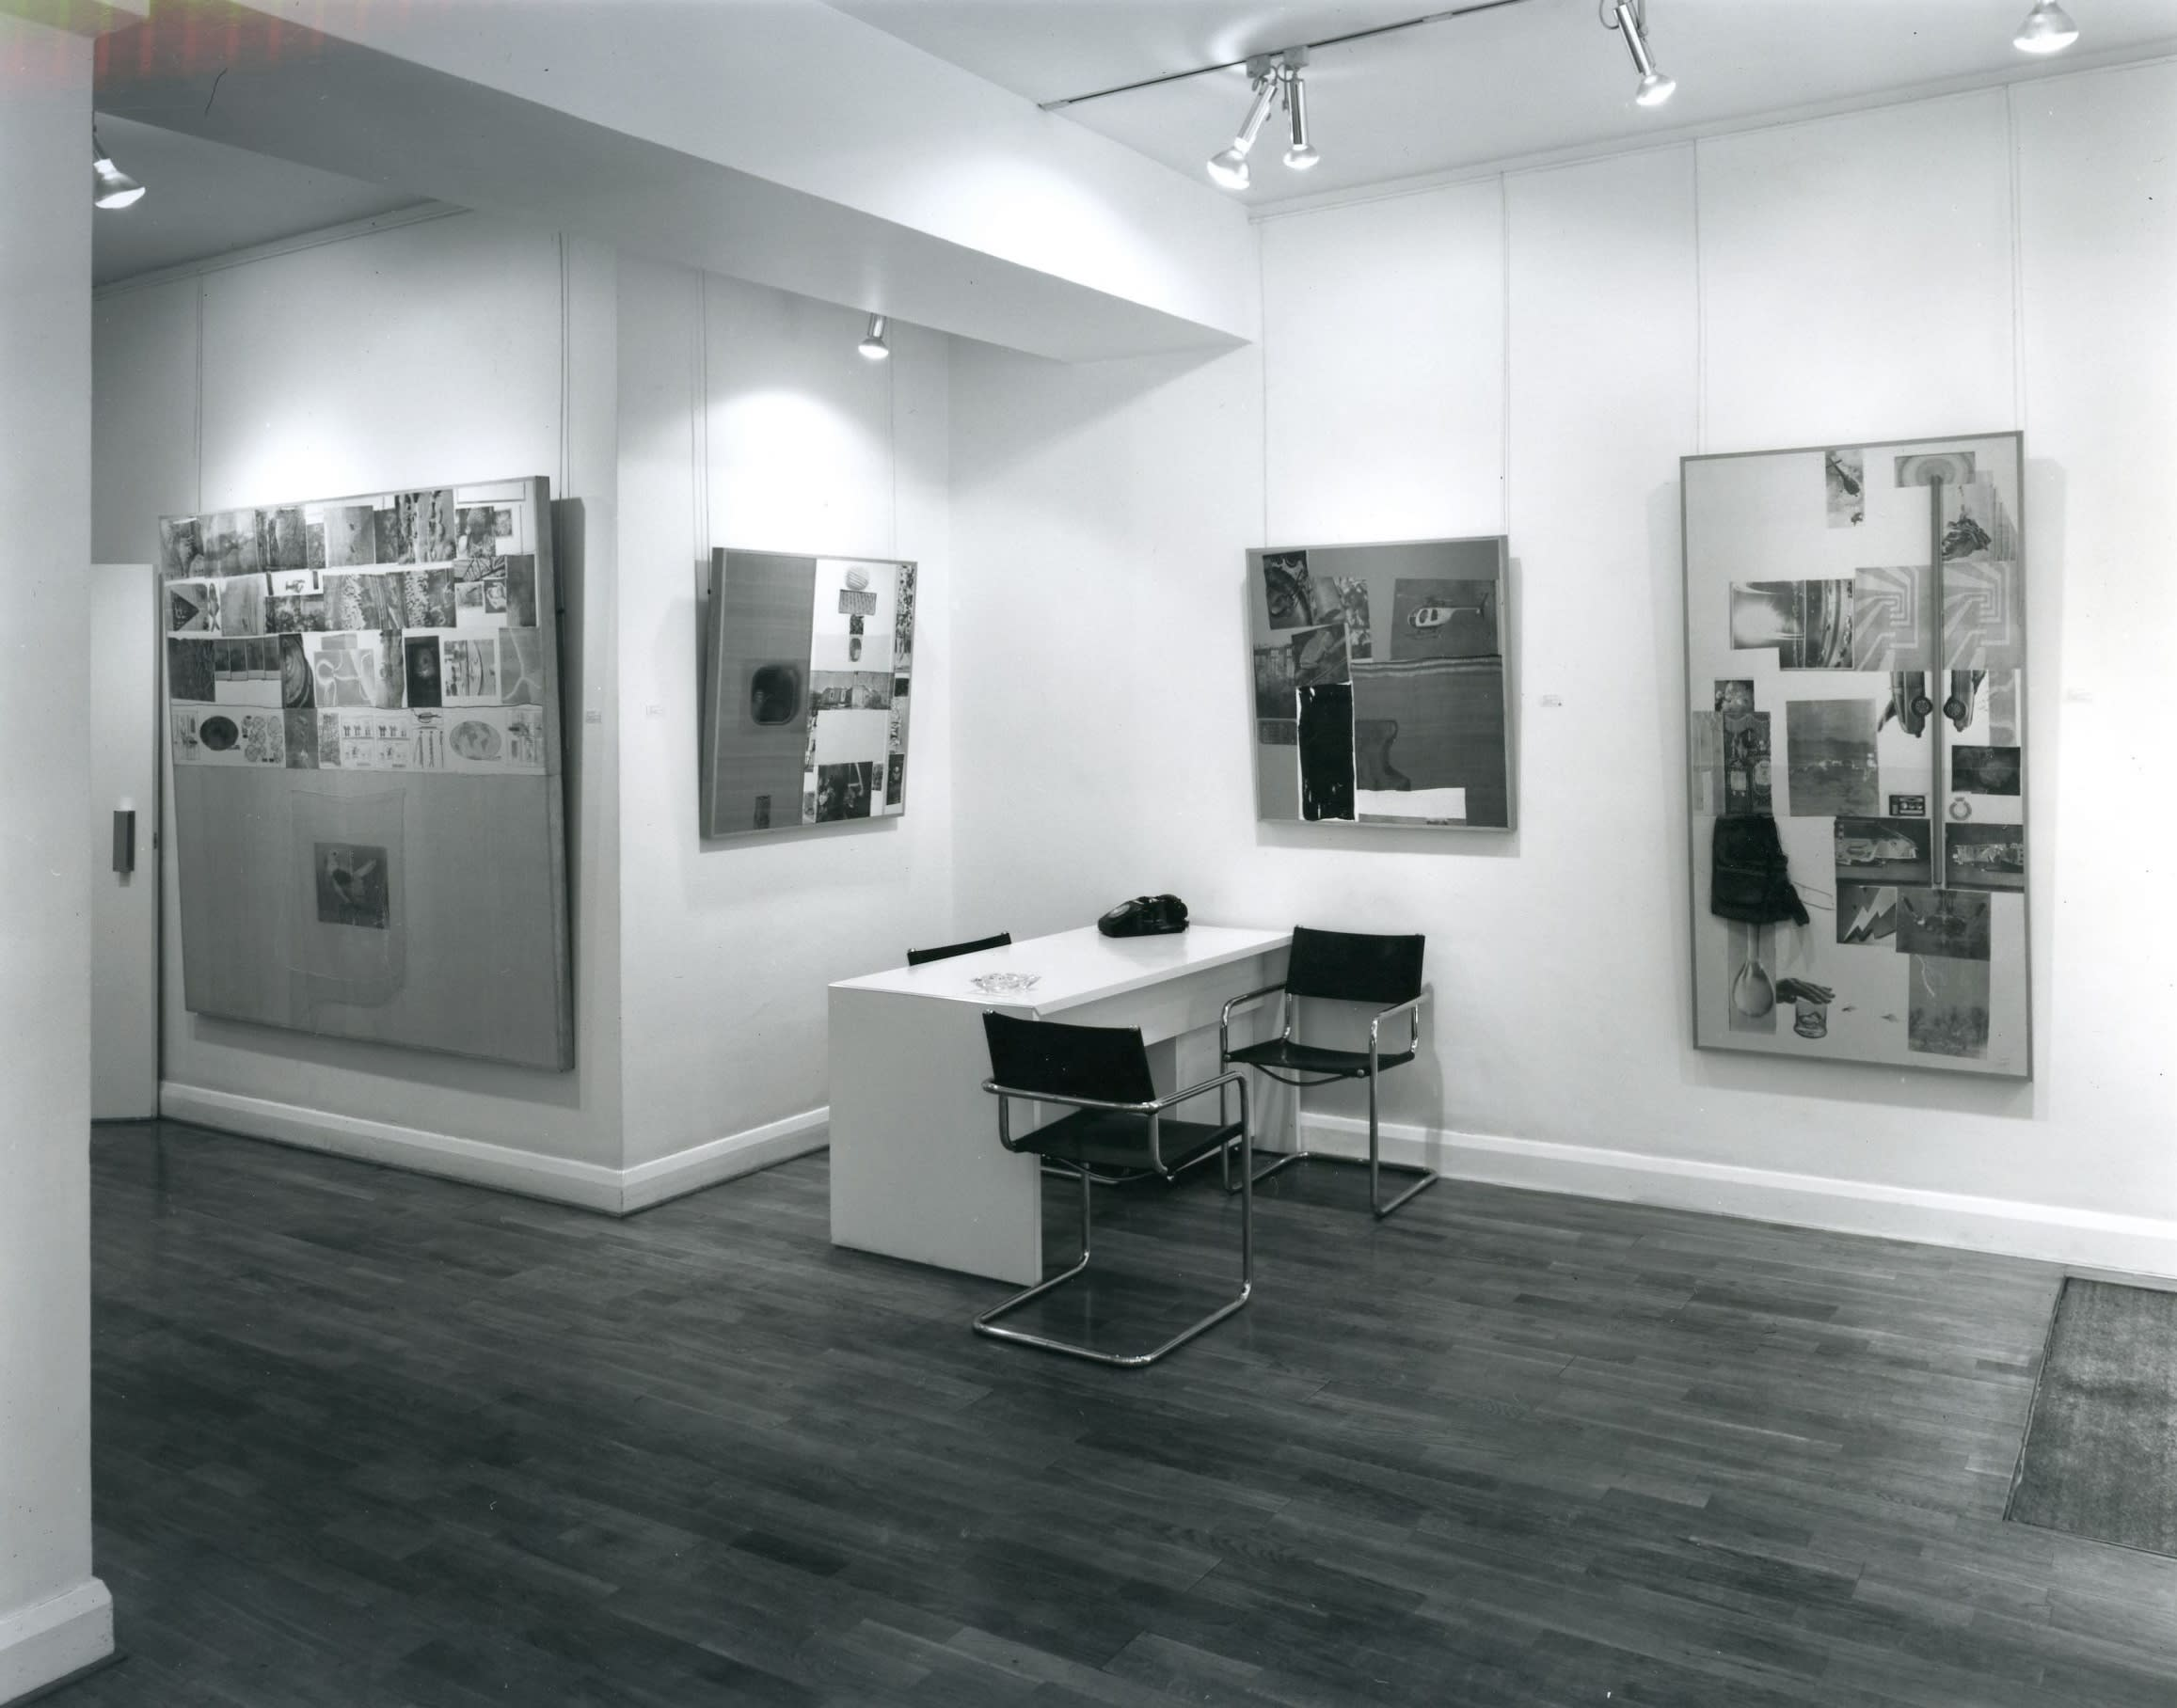 """<span class=""""link fancybox-details-link""""><a href=""""/exhibitions/304/works/image_standalone1509/"""">View Detail Page</a></span><p>ROBERT RAUSCHENBERG 